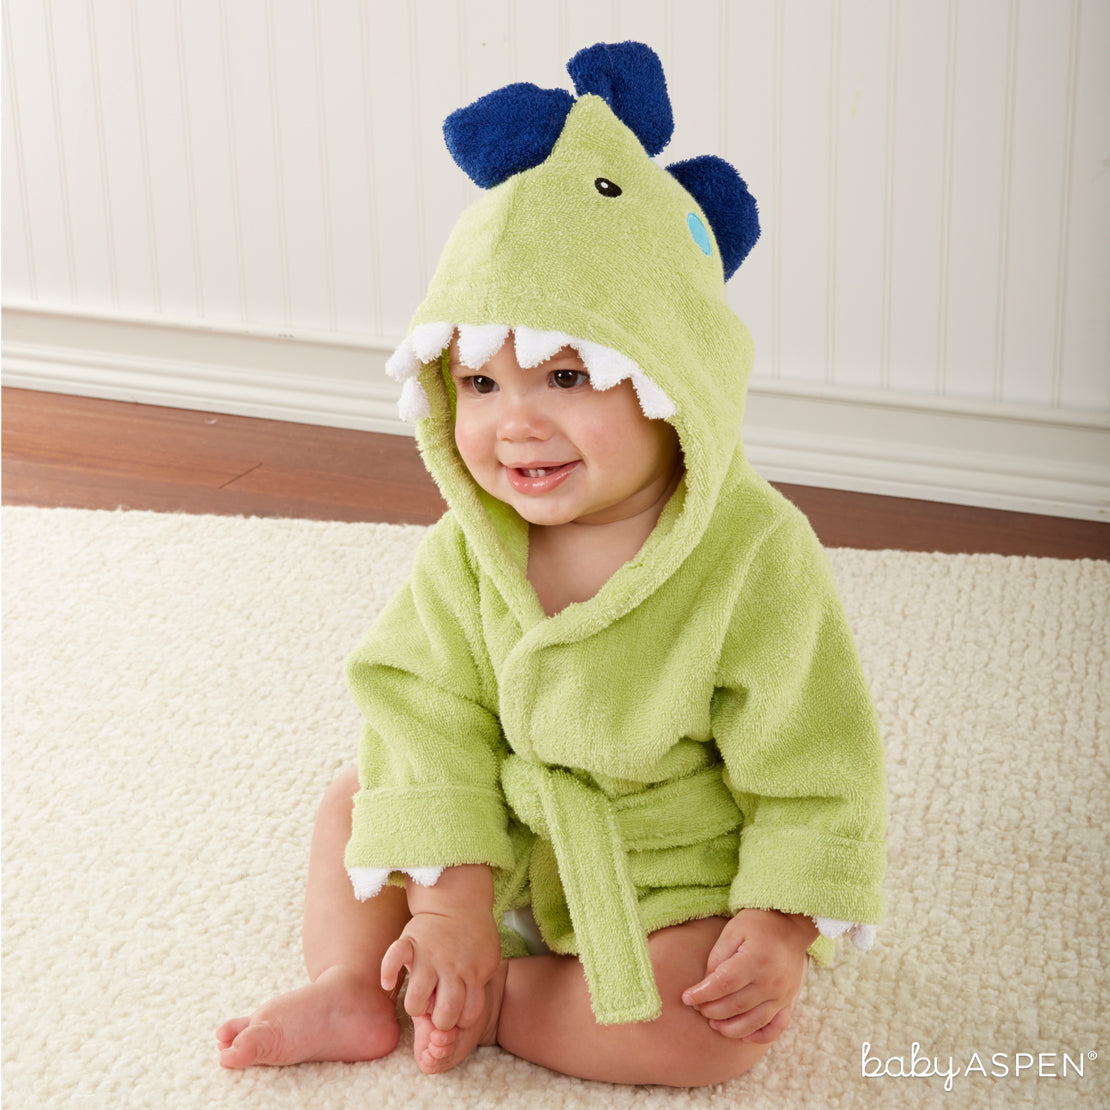 Dinosaur Robe With Baby | Dino-mite Gifts For Baby | Baby Aspen